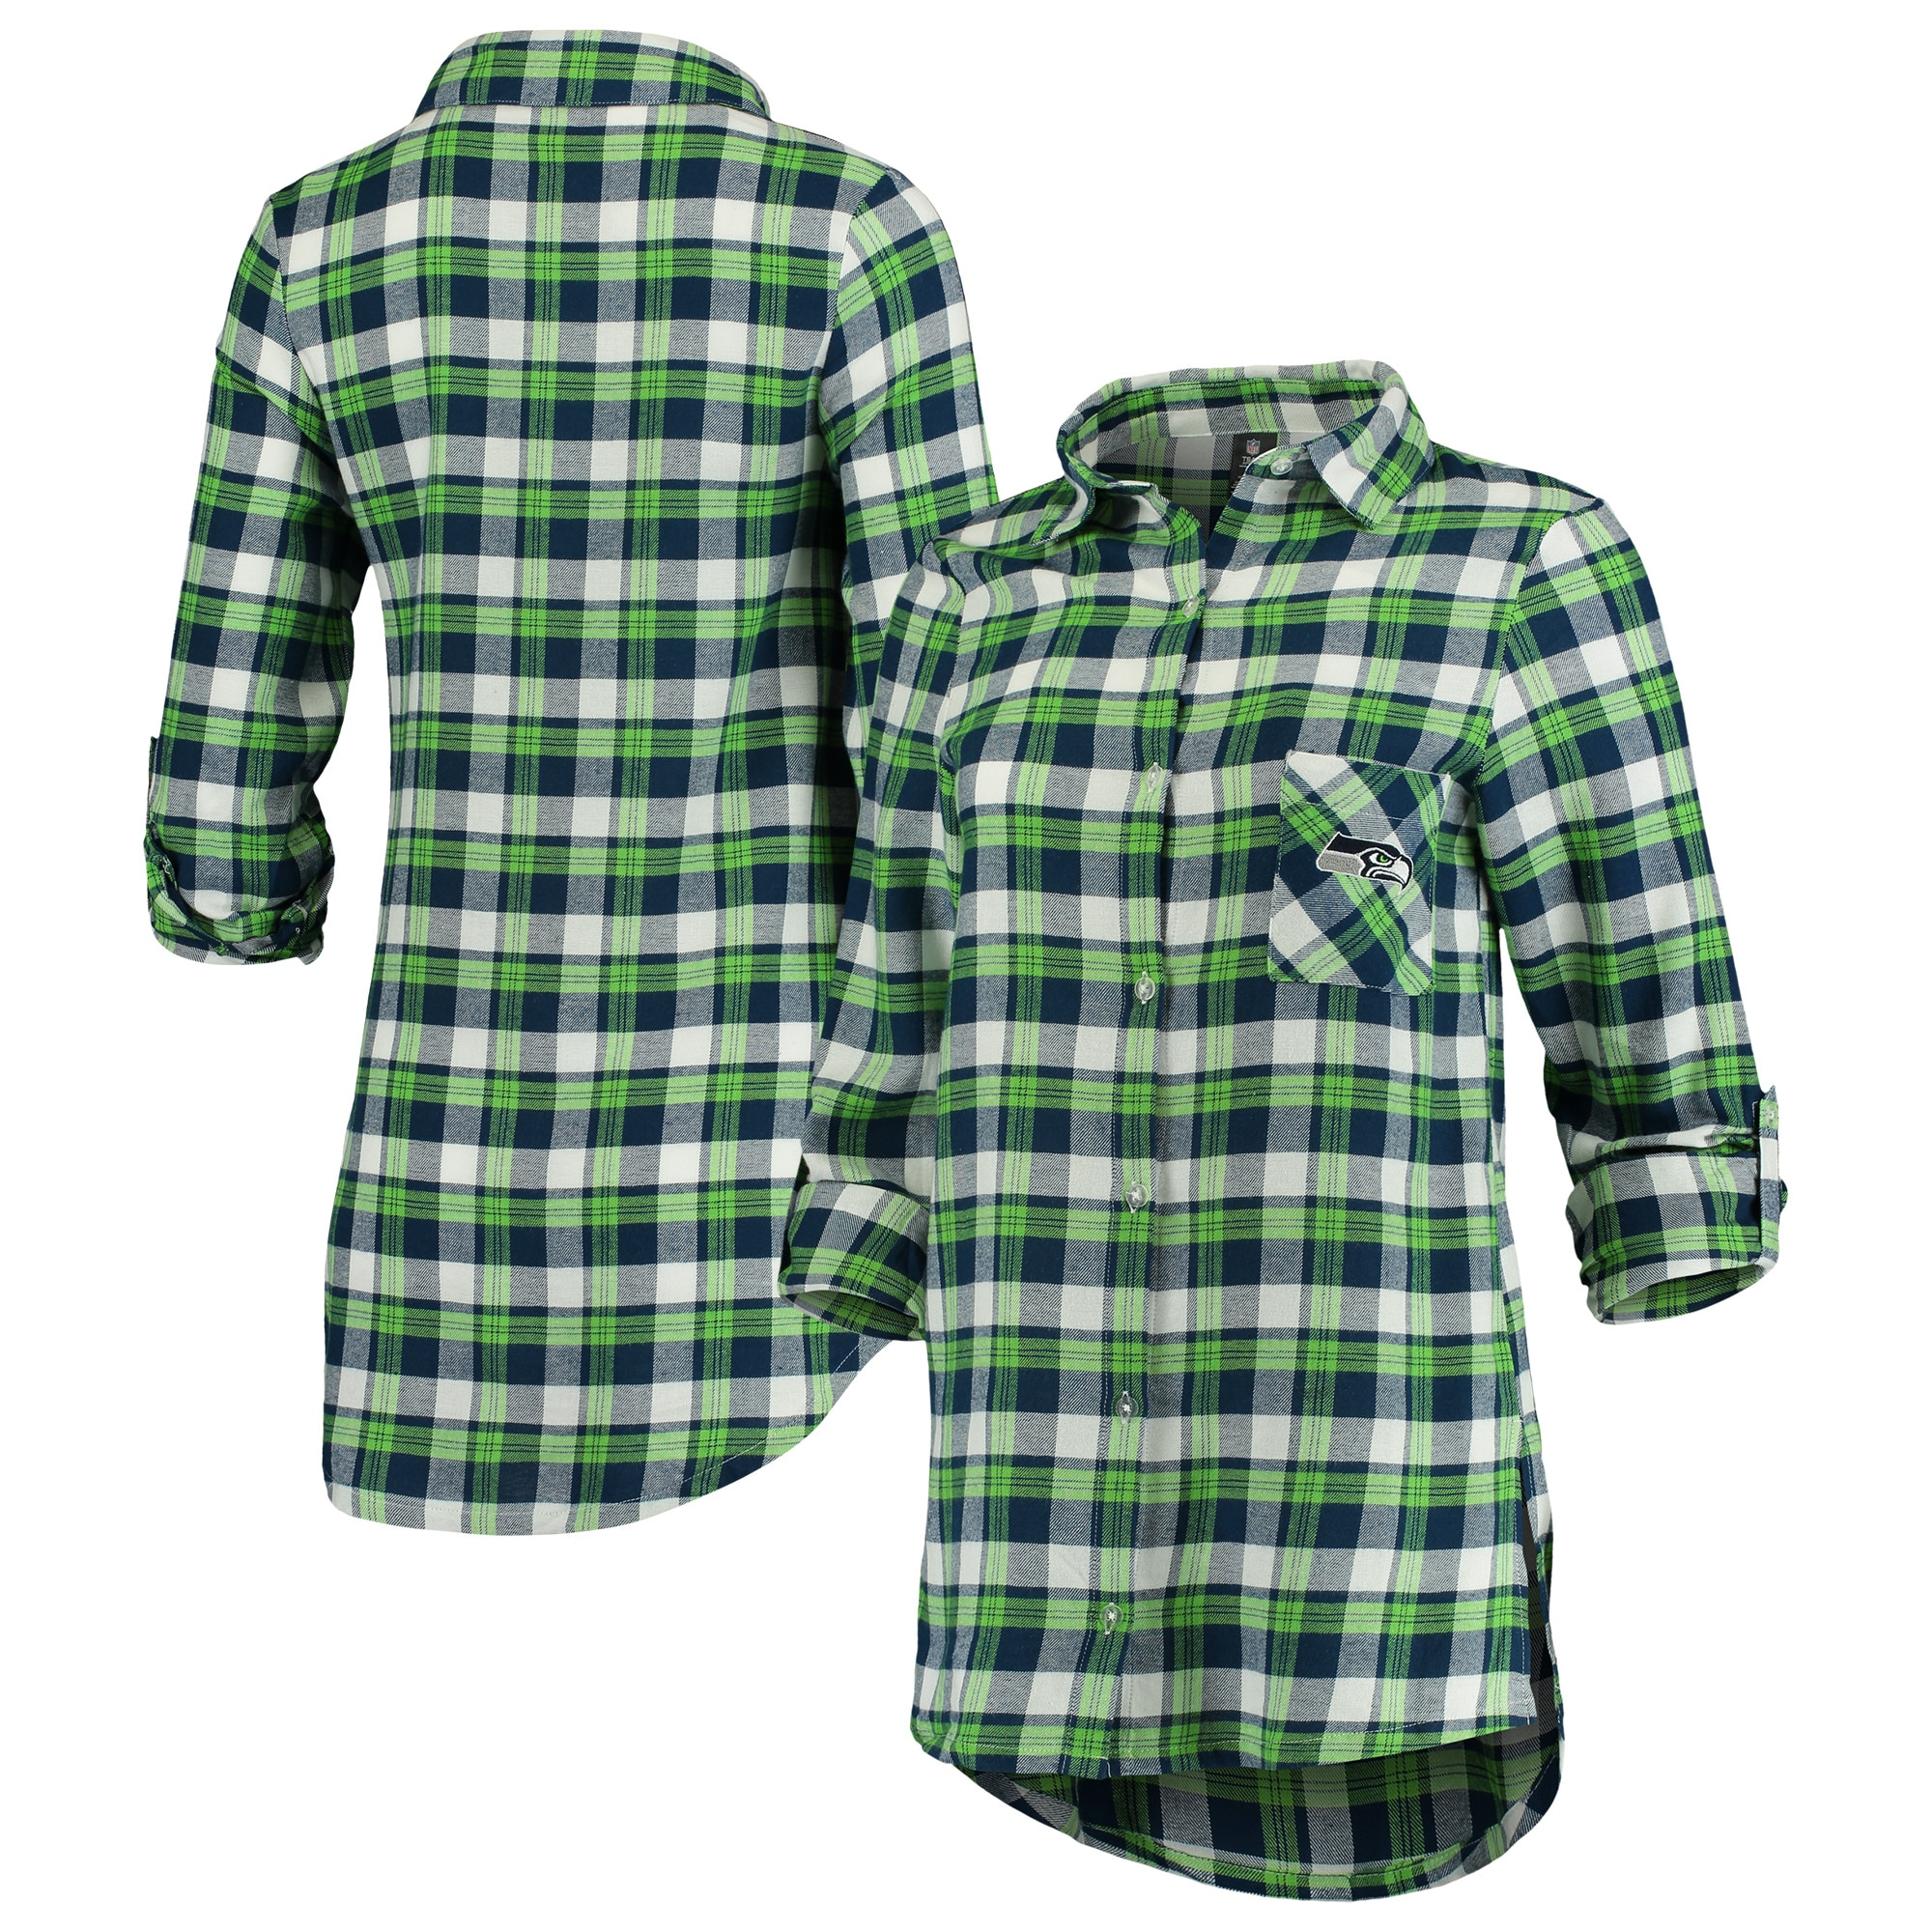 Seattle Seahawks Concepts Sport Women's Piedmont Flannel Button-Up Long Sleeve Shirt - Navy/Neon Green